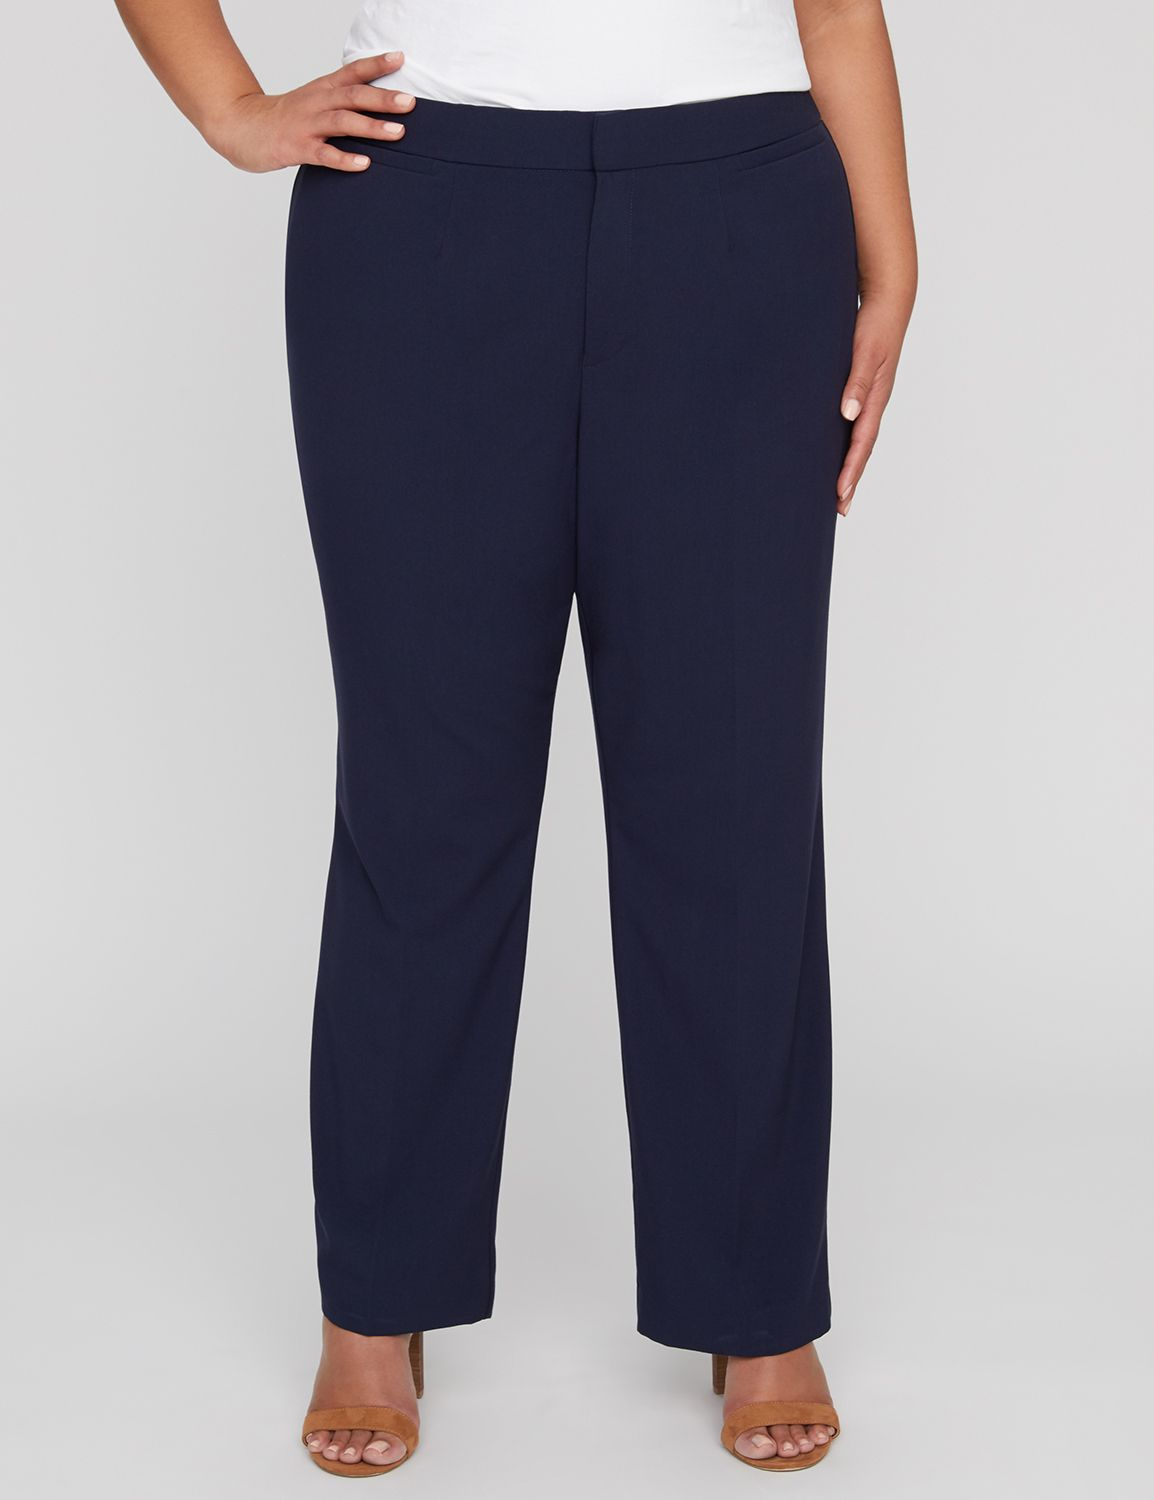 Right Fit Pant (Curvy) Right Fit Pant (Curvy) MP-300043647